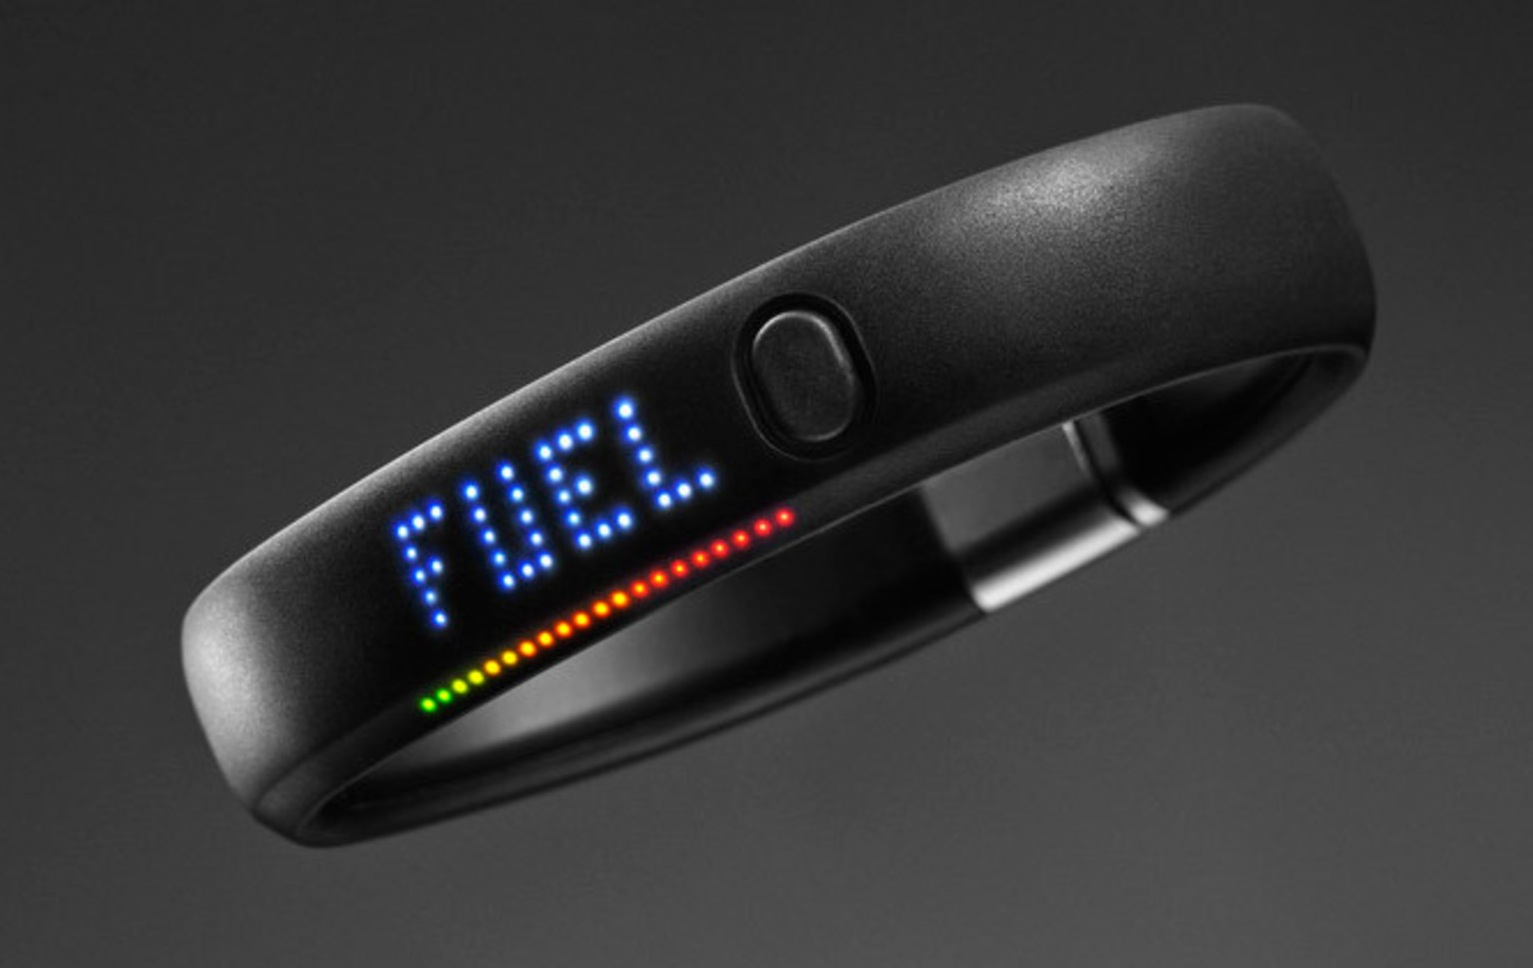 Nike FuelBand: The rise and fall of the wearable that started it all